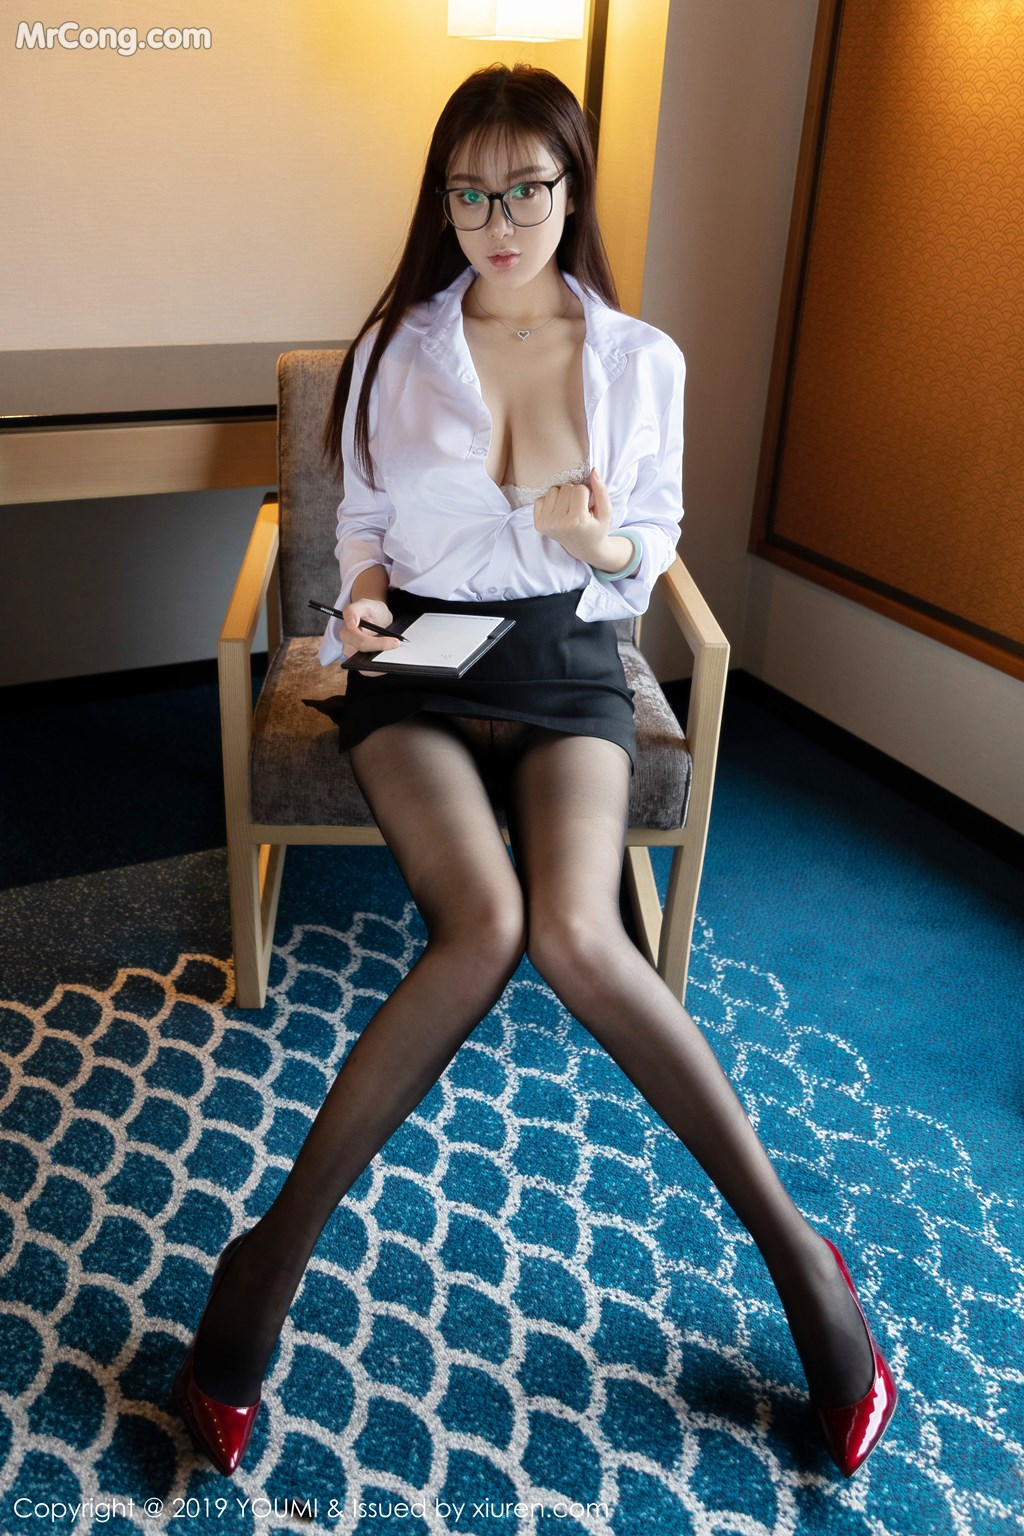 Image YouMi-Vol.320-Silvia-MrCong.com-008 in post YouMi Vol.320: 易阳Silvia (65 ảnh)